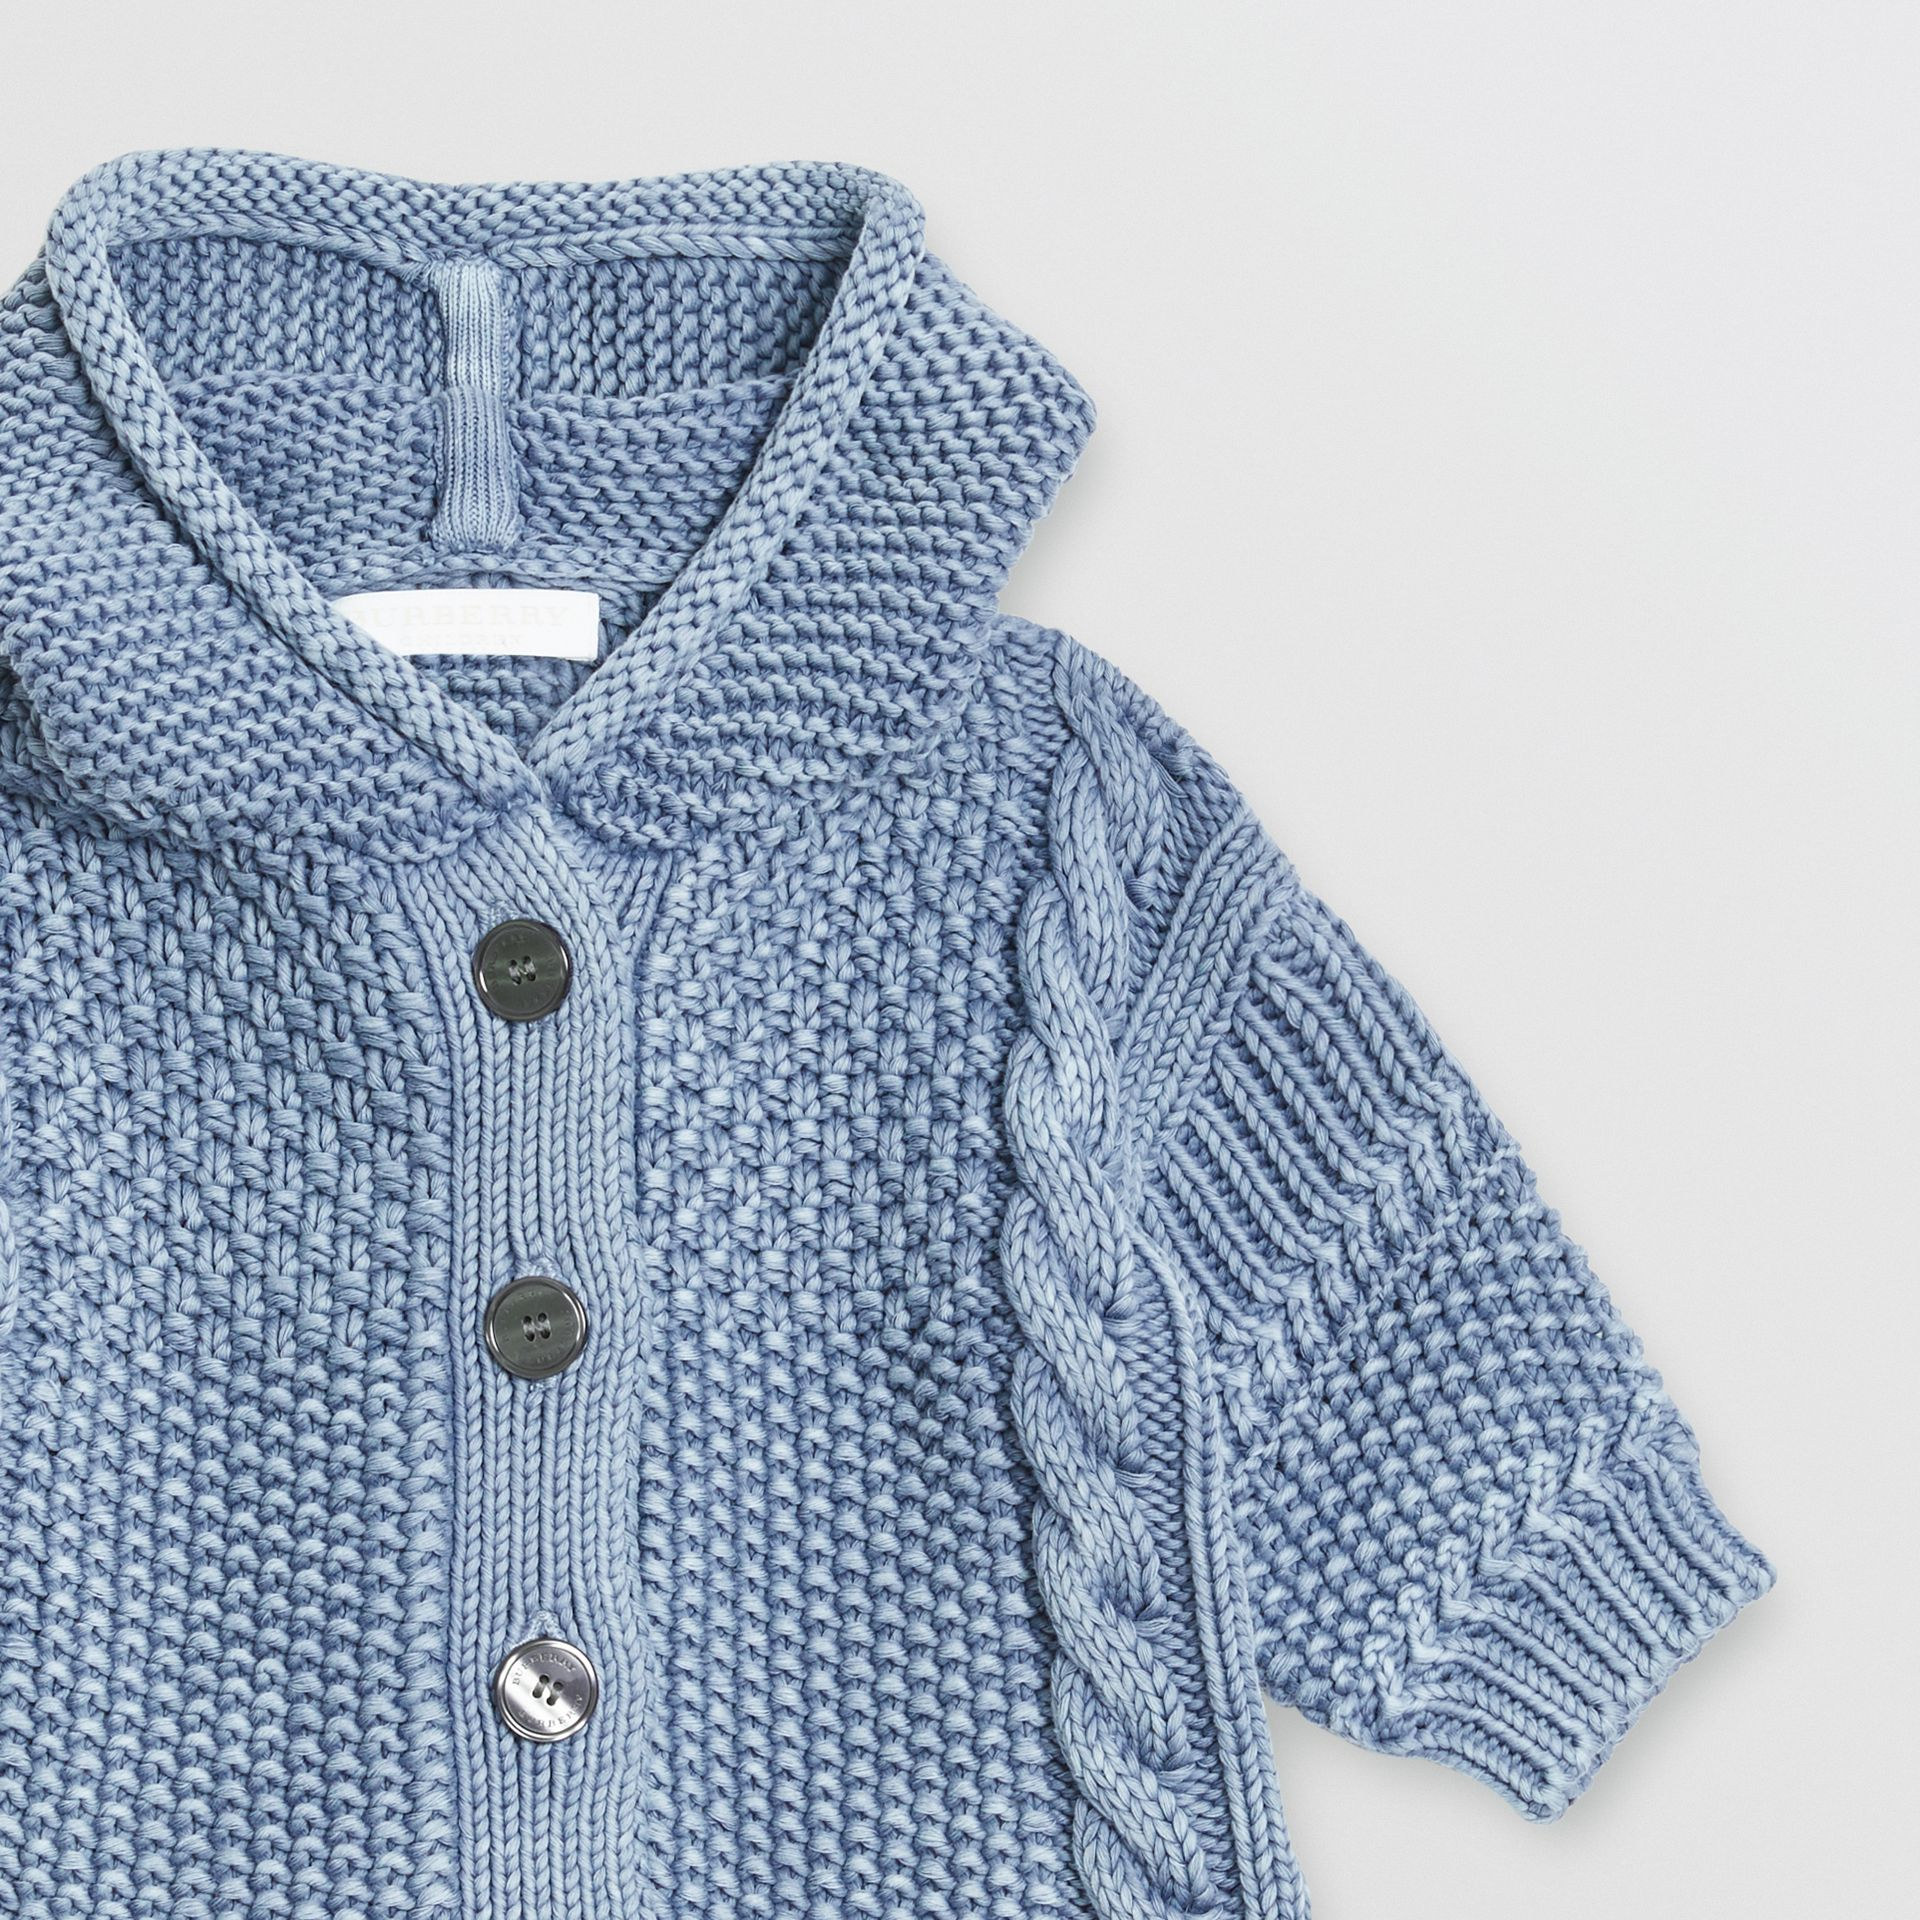 Contrast Knit Cotton Hooded Jacket in Dusty Blue - Children | Burberry Canada - gallery image 4